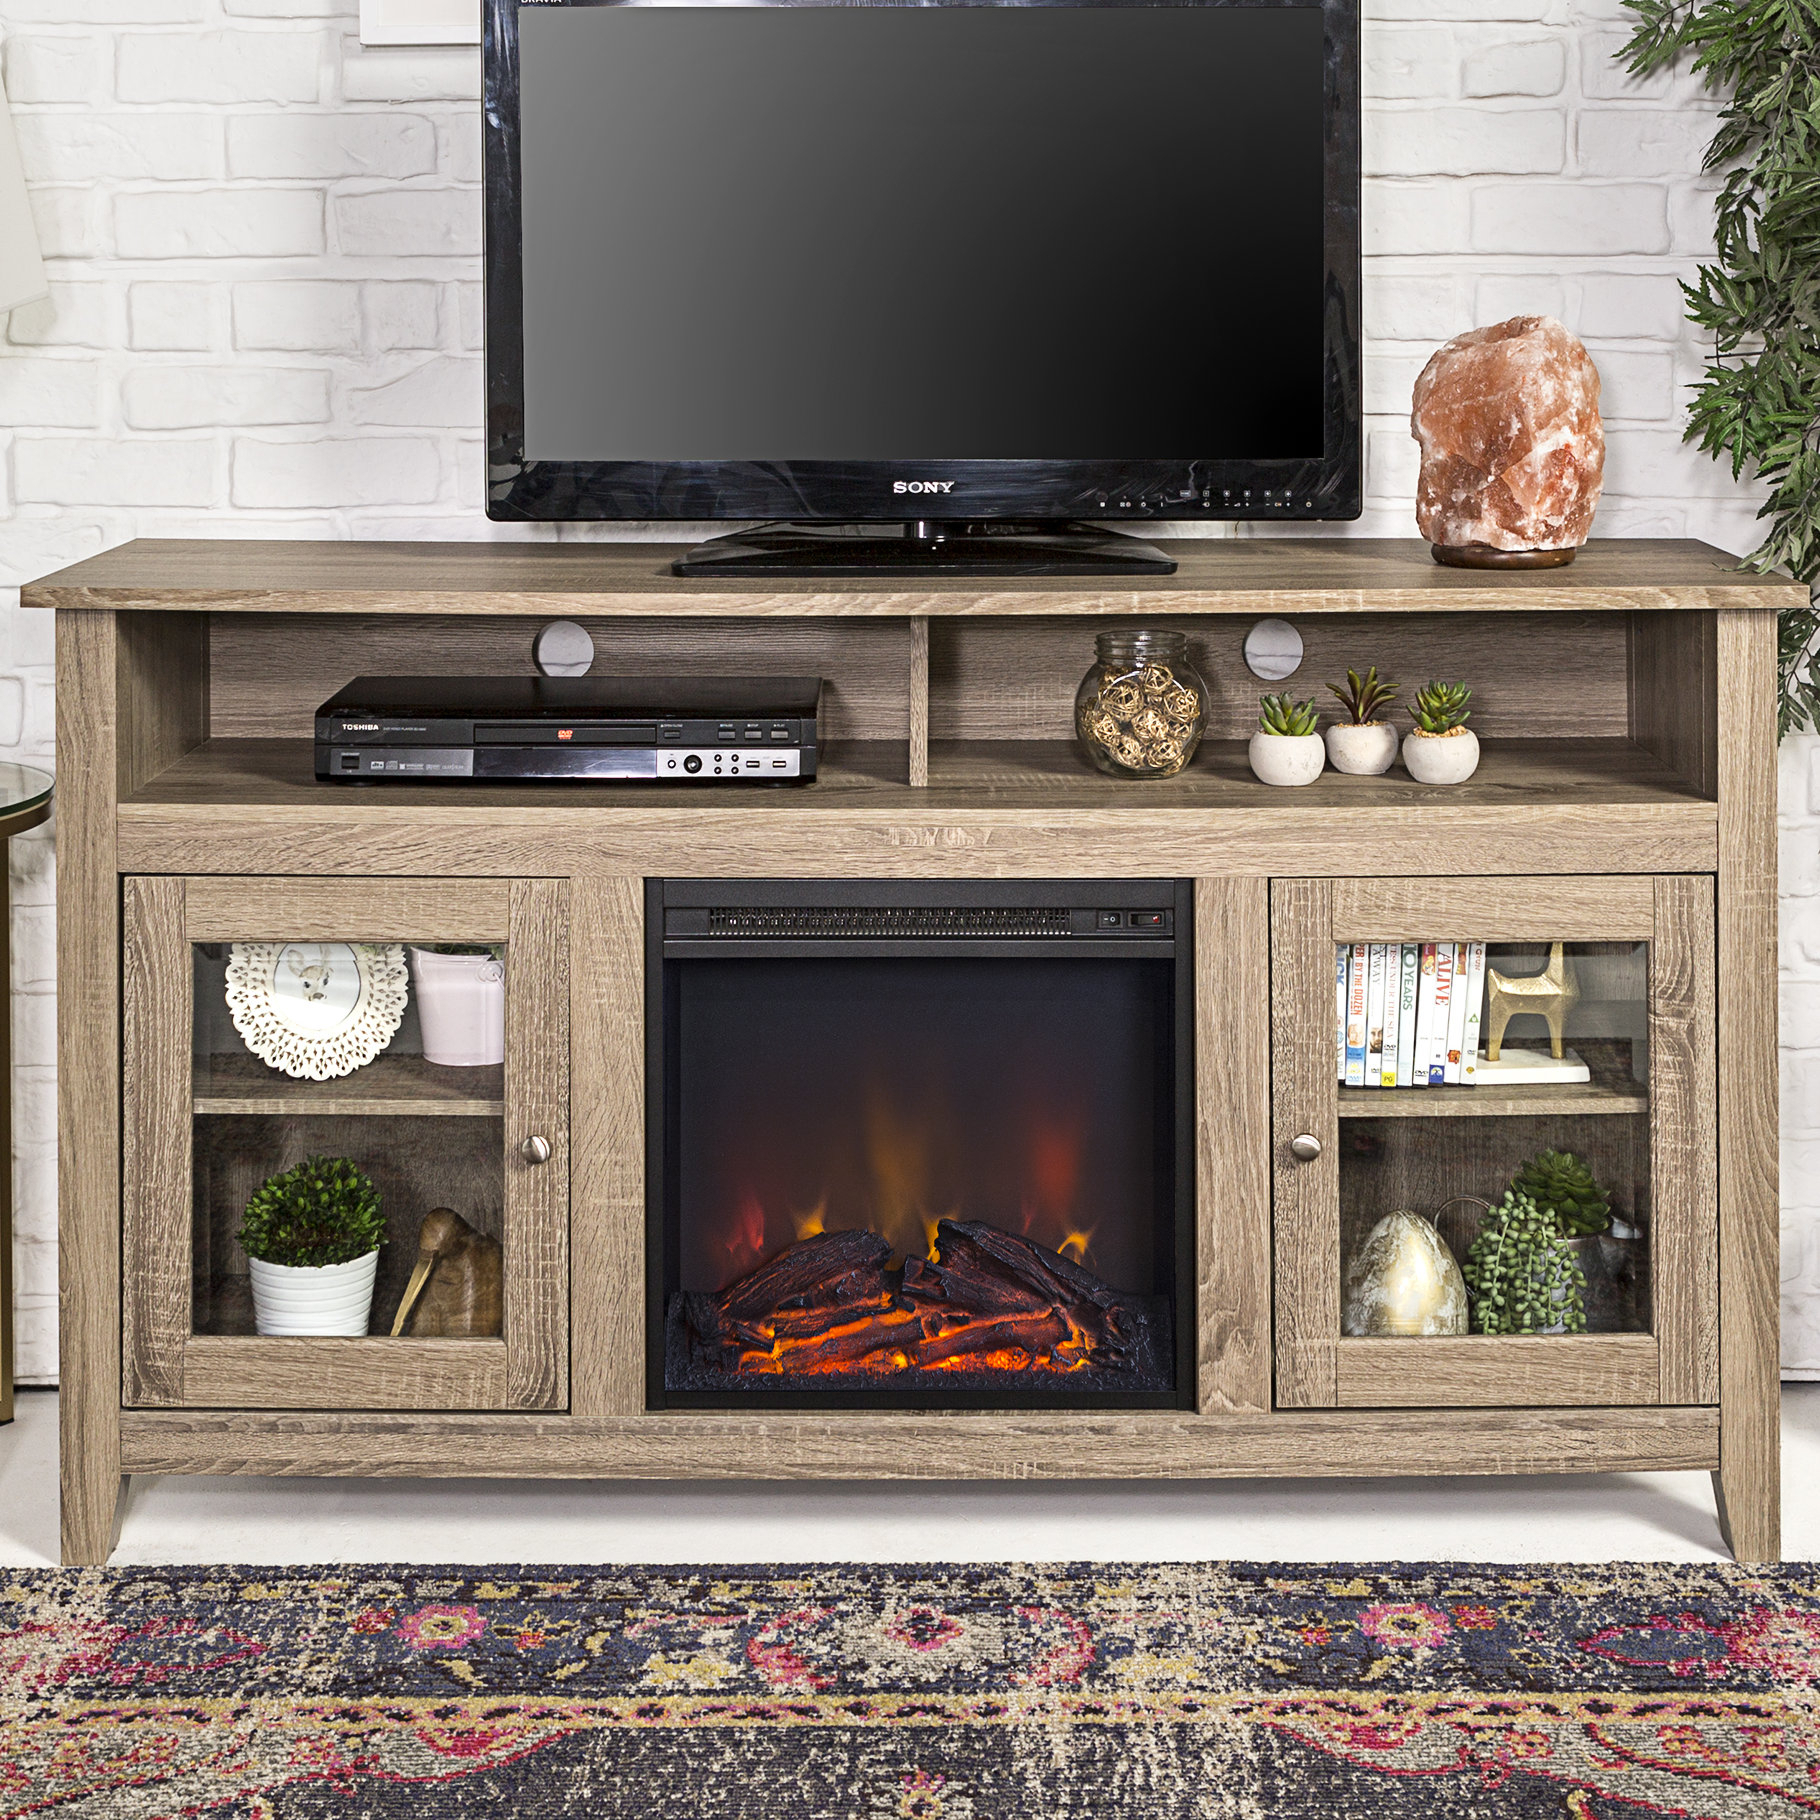 Fireplace Tv Stands & Entertainment Centers You'll Love | Wayfair (View 21 of 30)